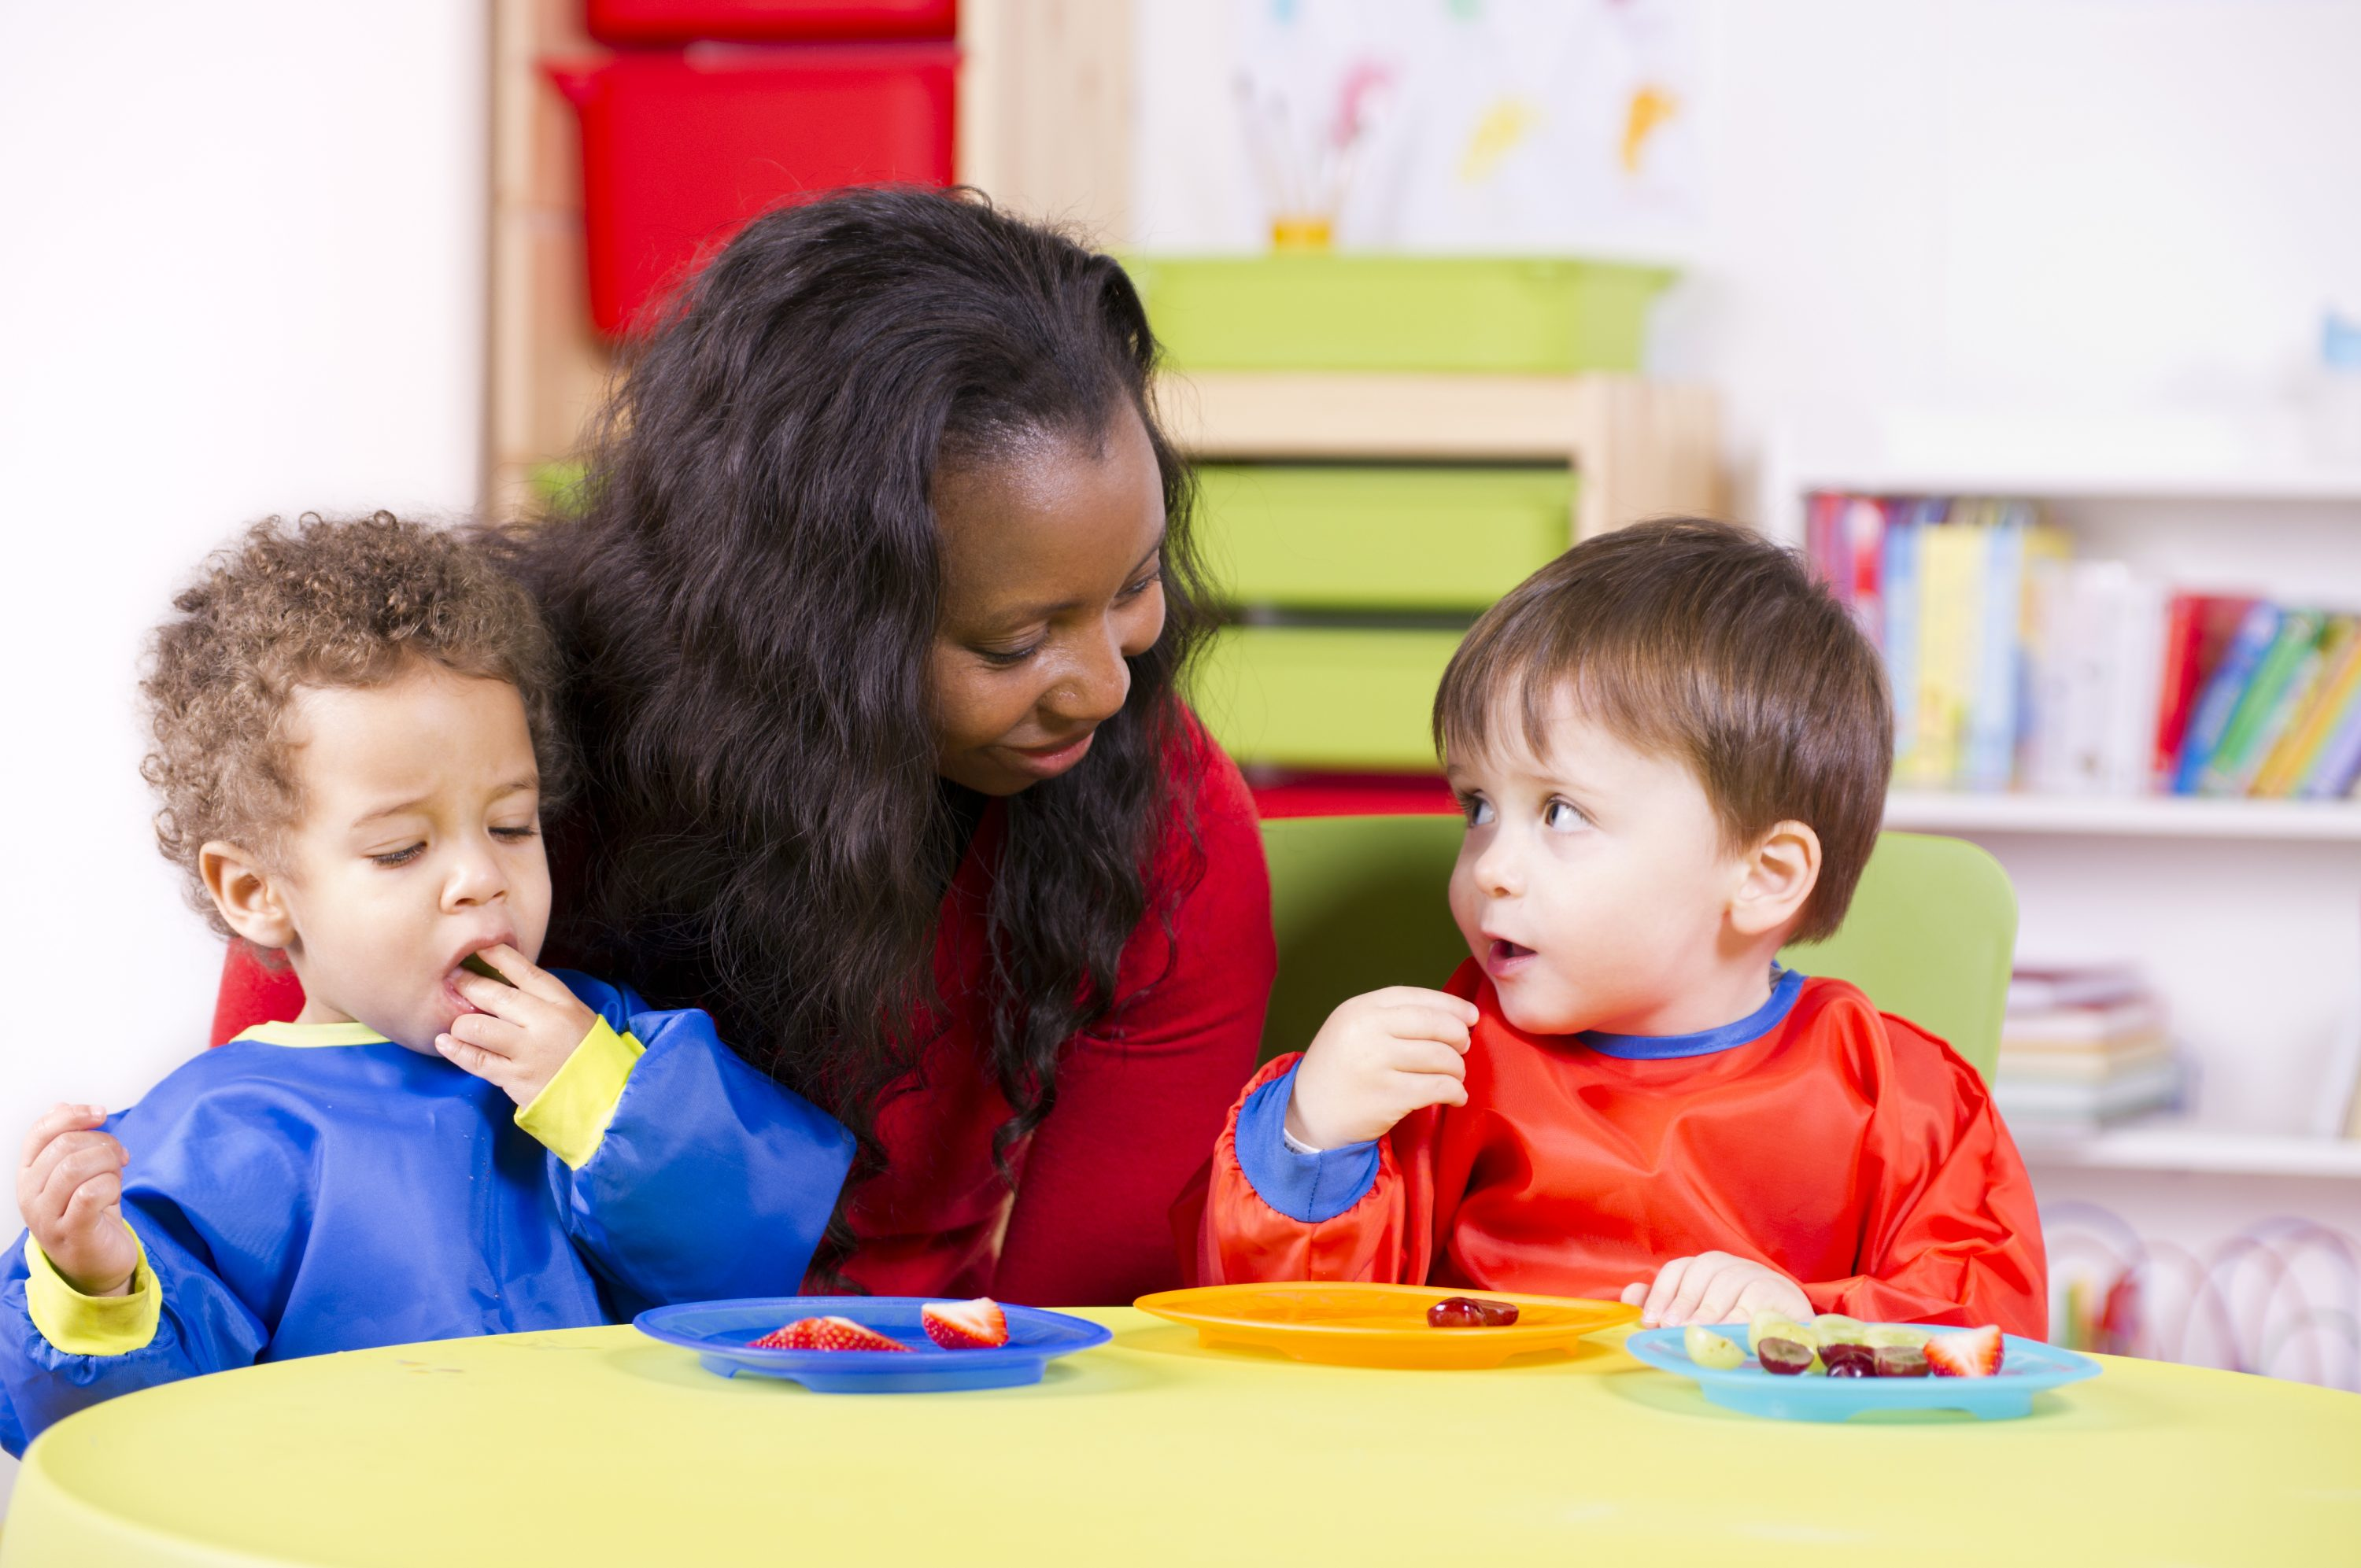 African American educator seated at table with two preschool aged children eating fruit